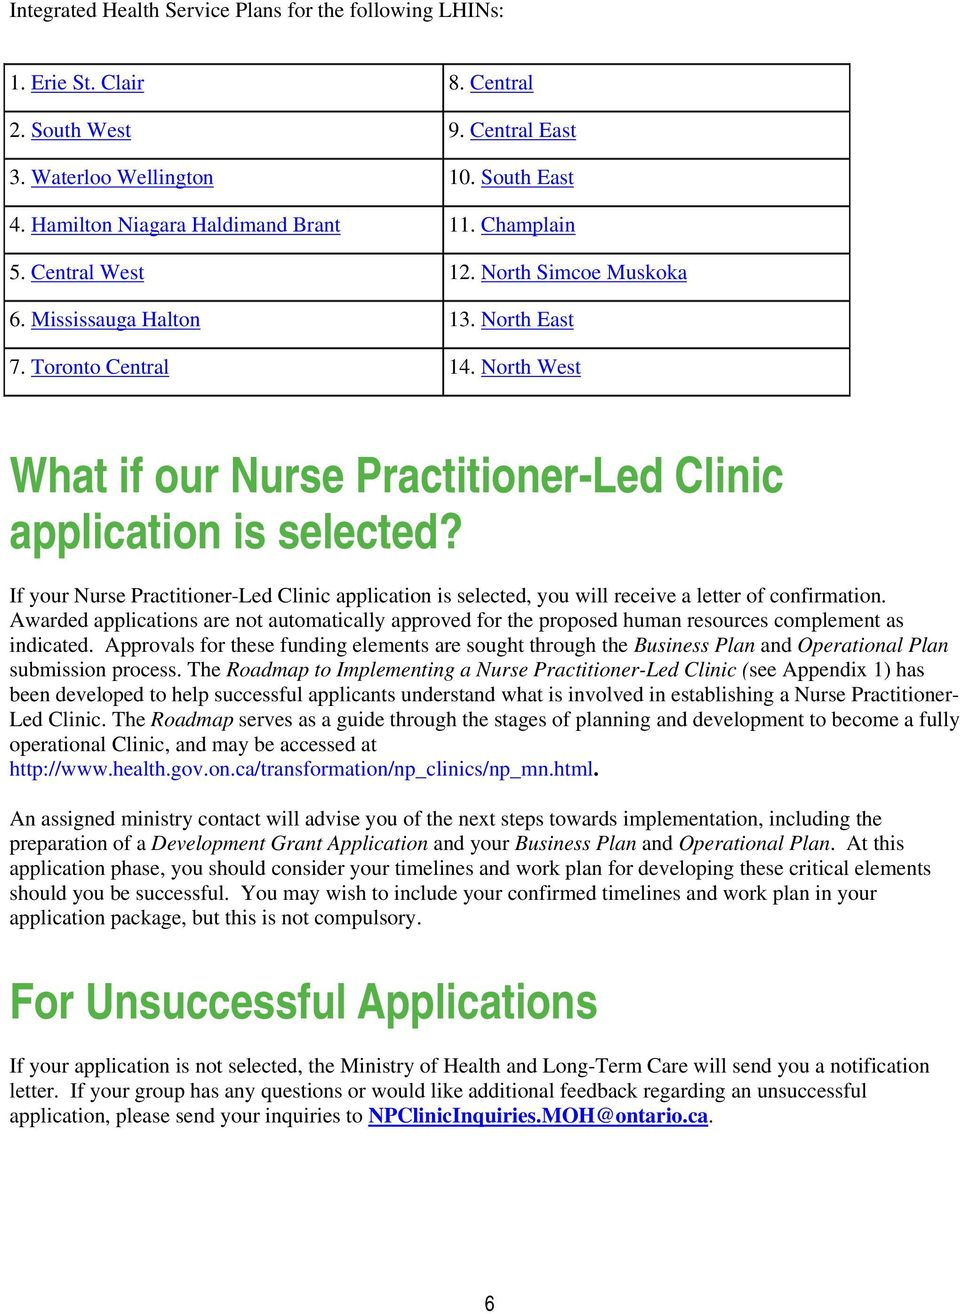 If your Nurse Practitioner-Led Clinic application is selected, you will receive a letter of confirmation.